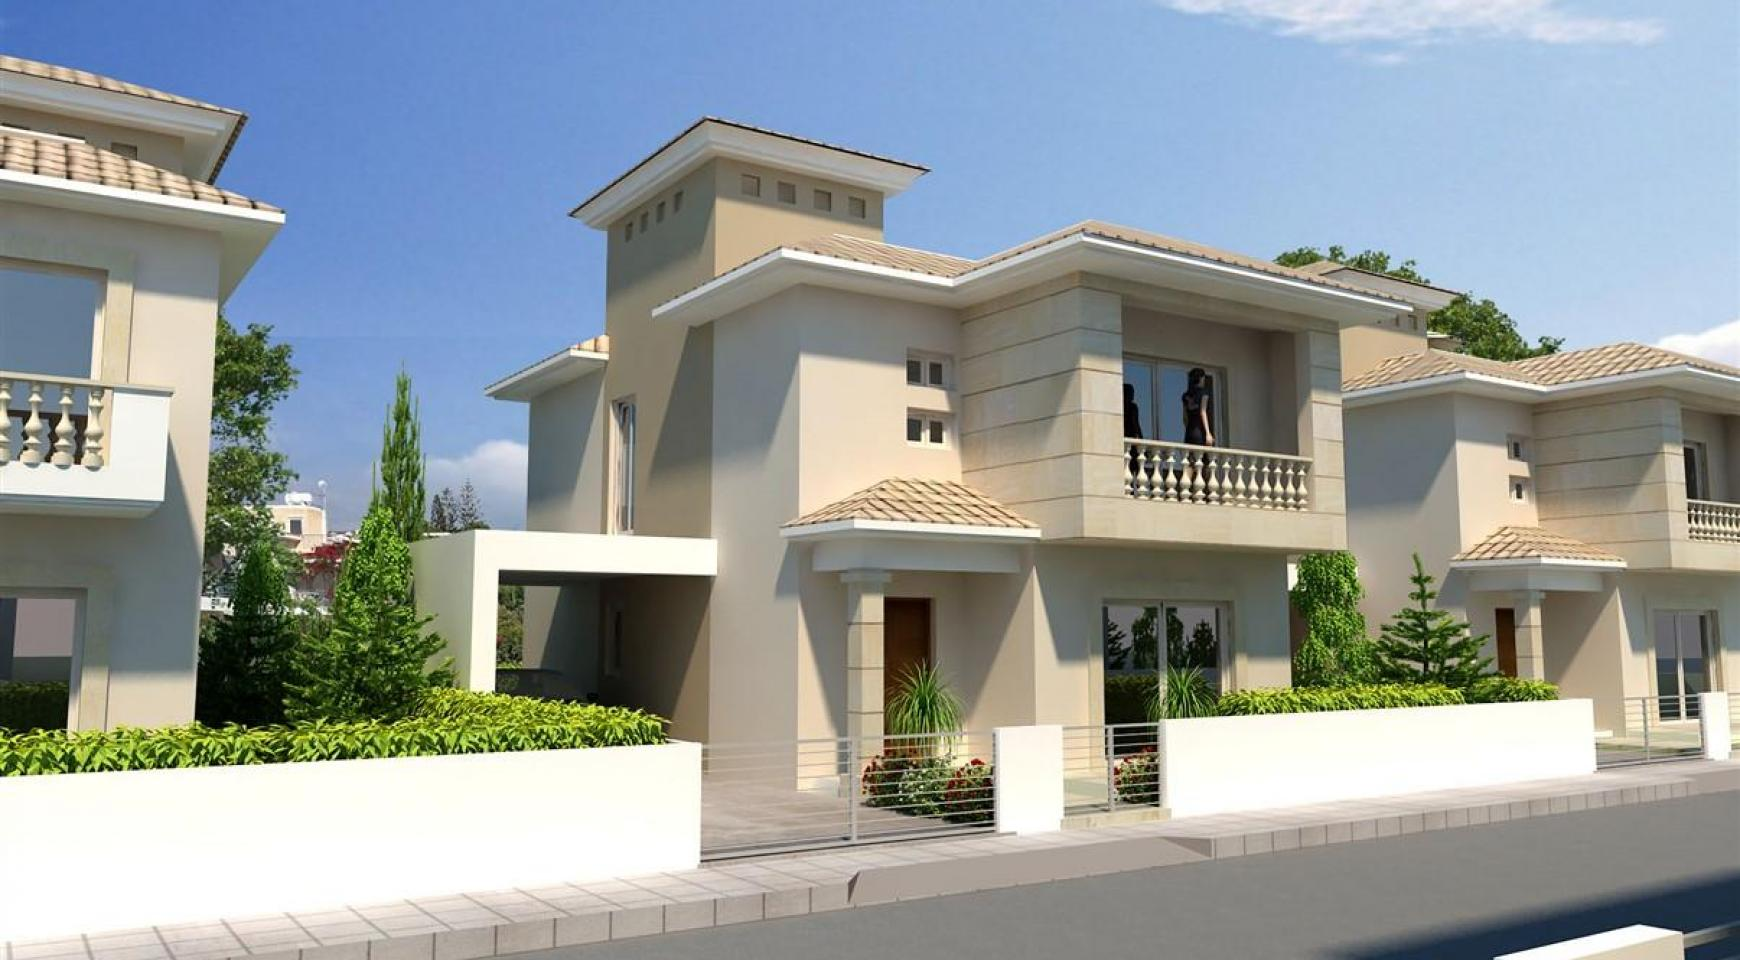 3 Bedroom Villa in a New Project - 21